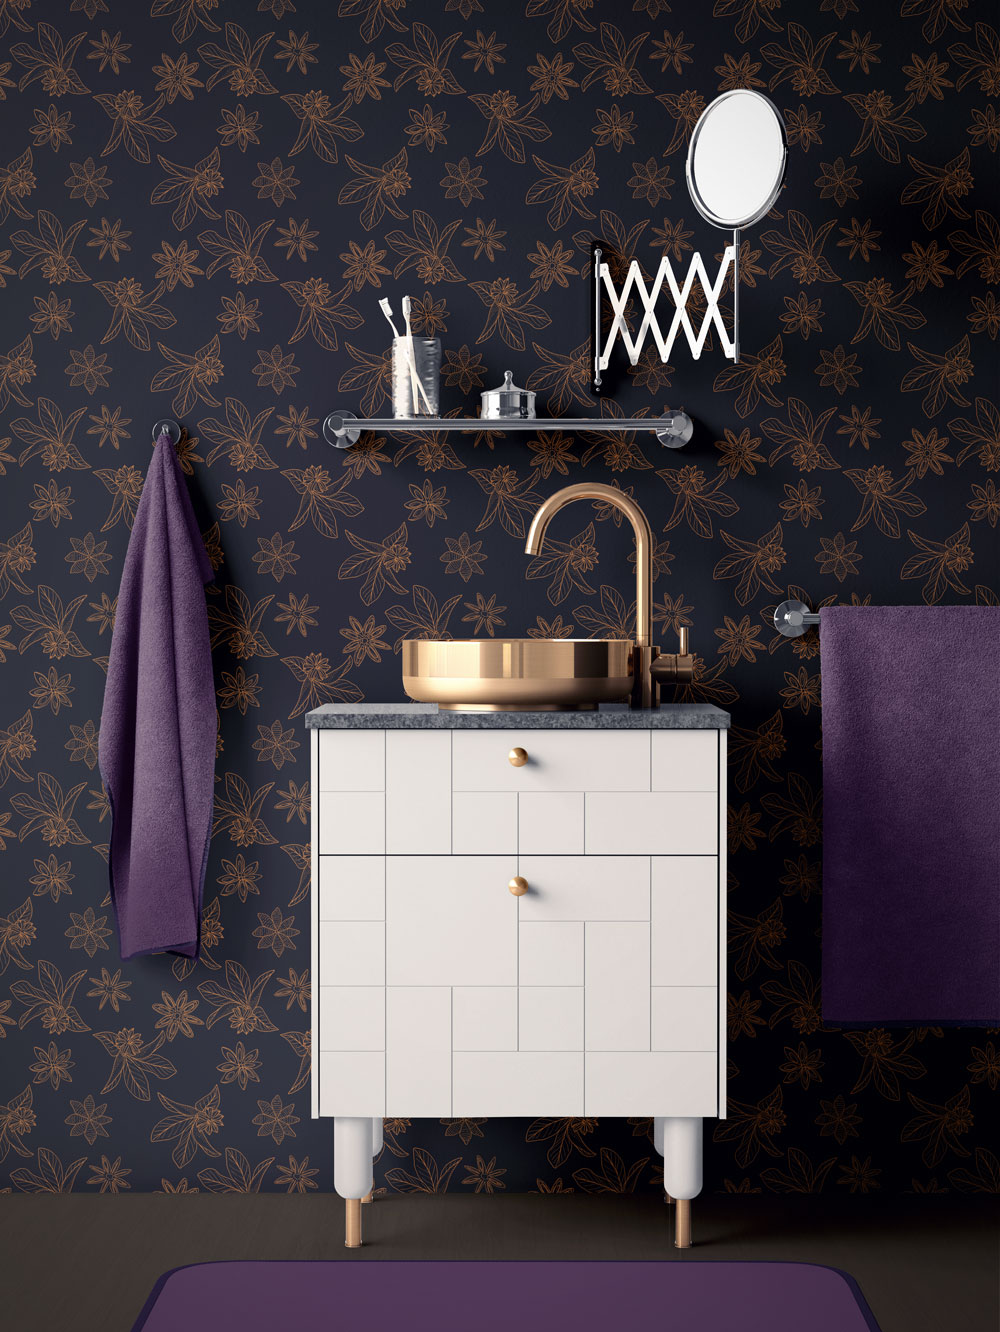 Anise-Bathroom-scene-(more-customizable).jpg